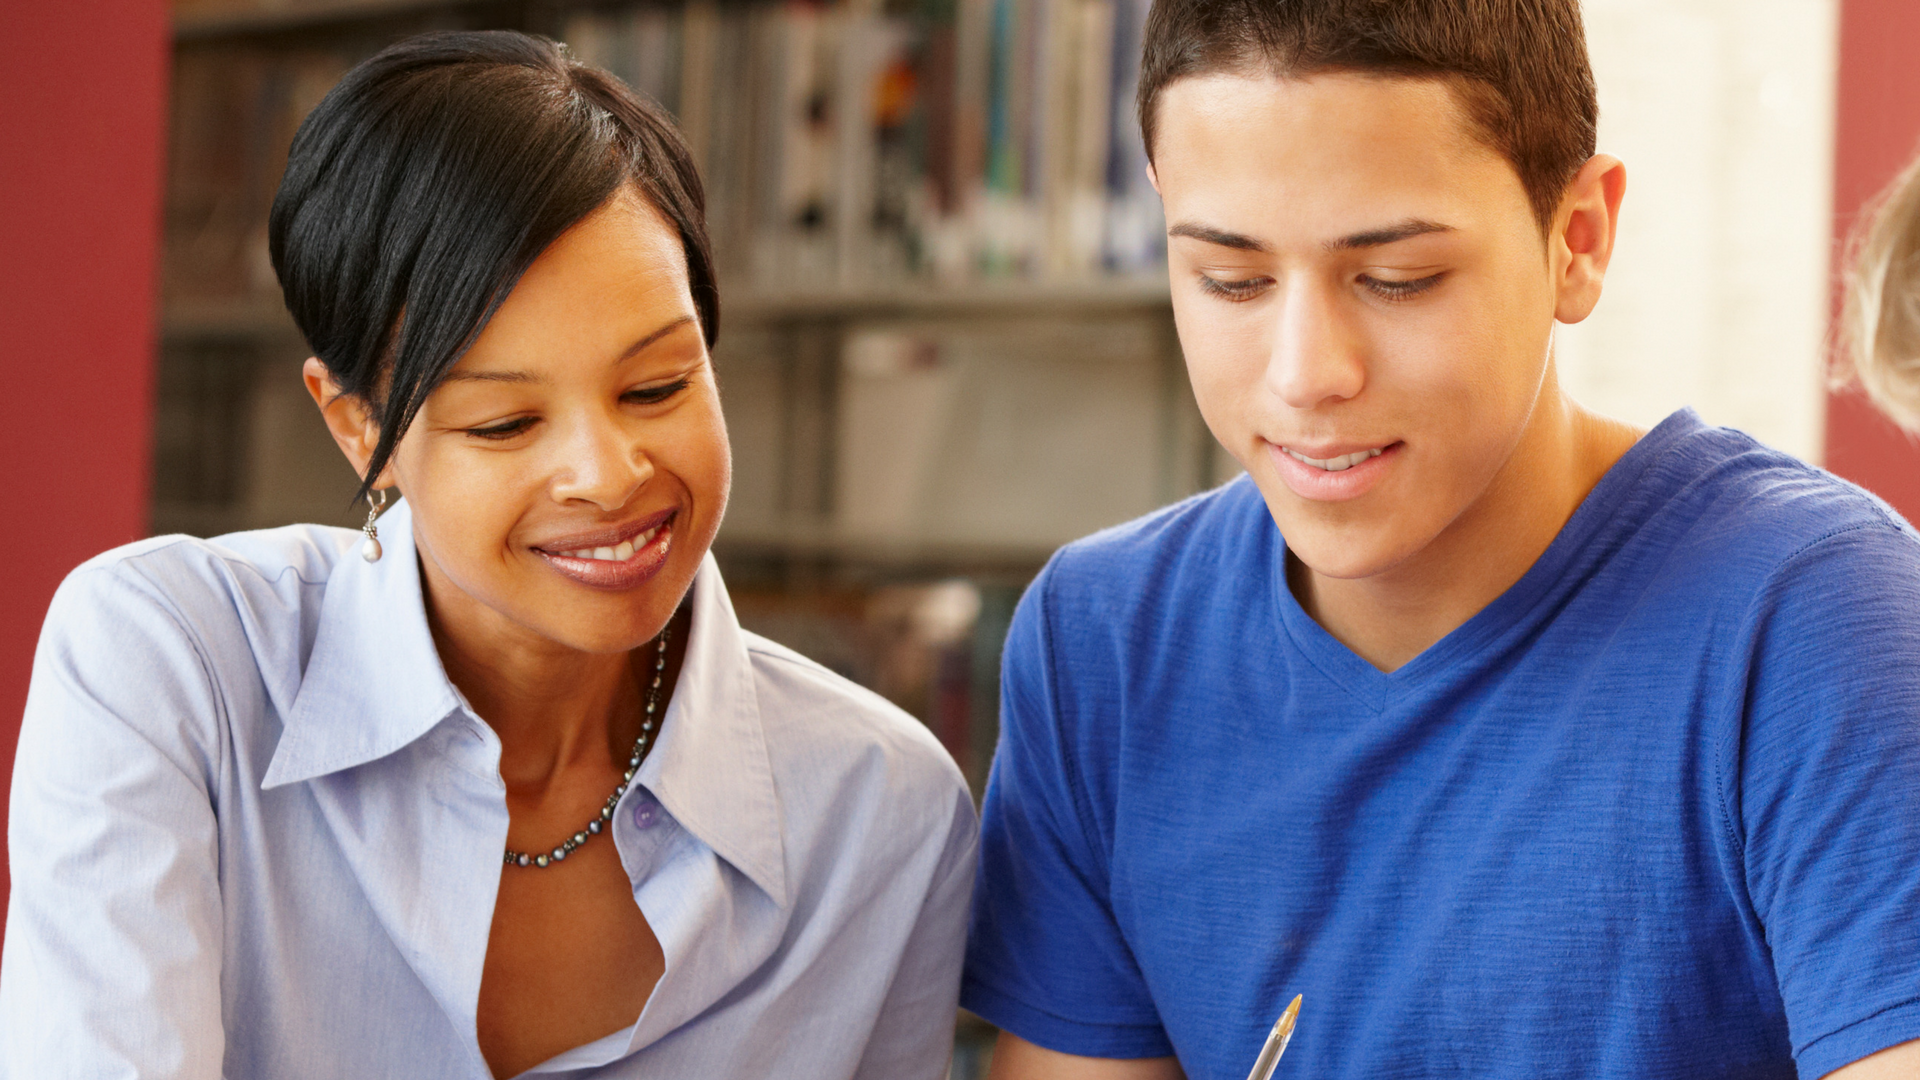 Professional Development - Most gifted and talented children are taught in regular education settings. All teachers need professional development to make sure that they are able to recognize and support these children with evidence-based strategies.